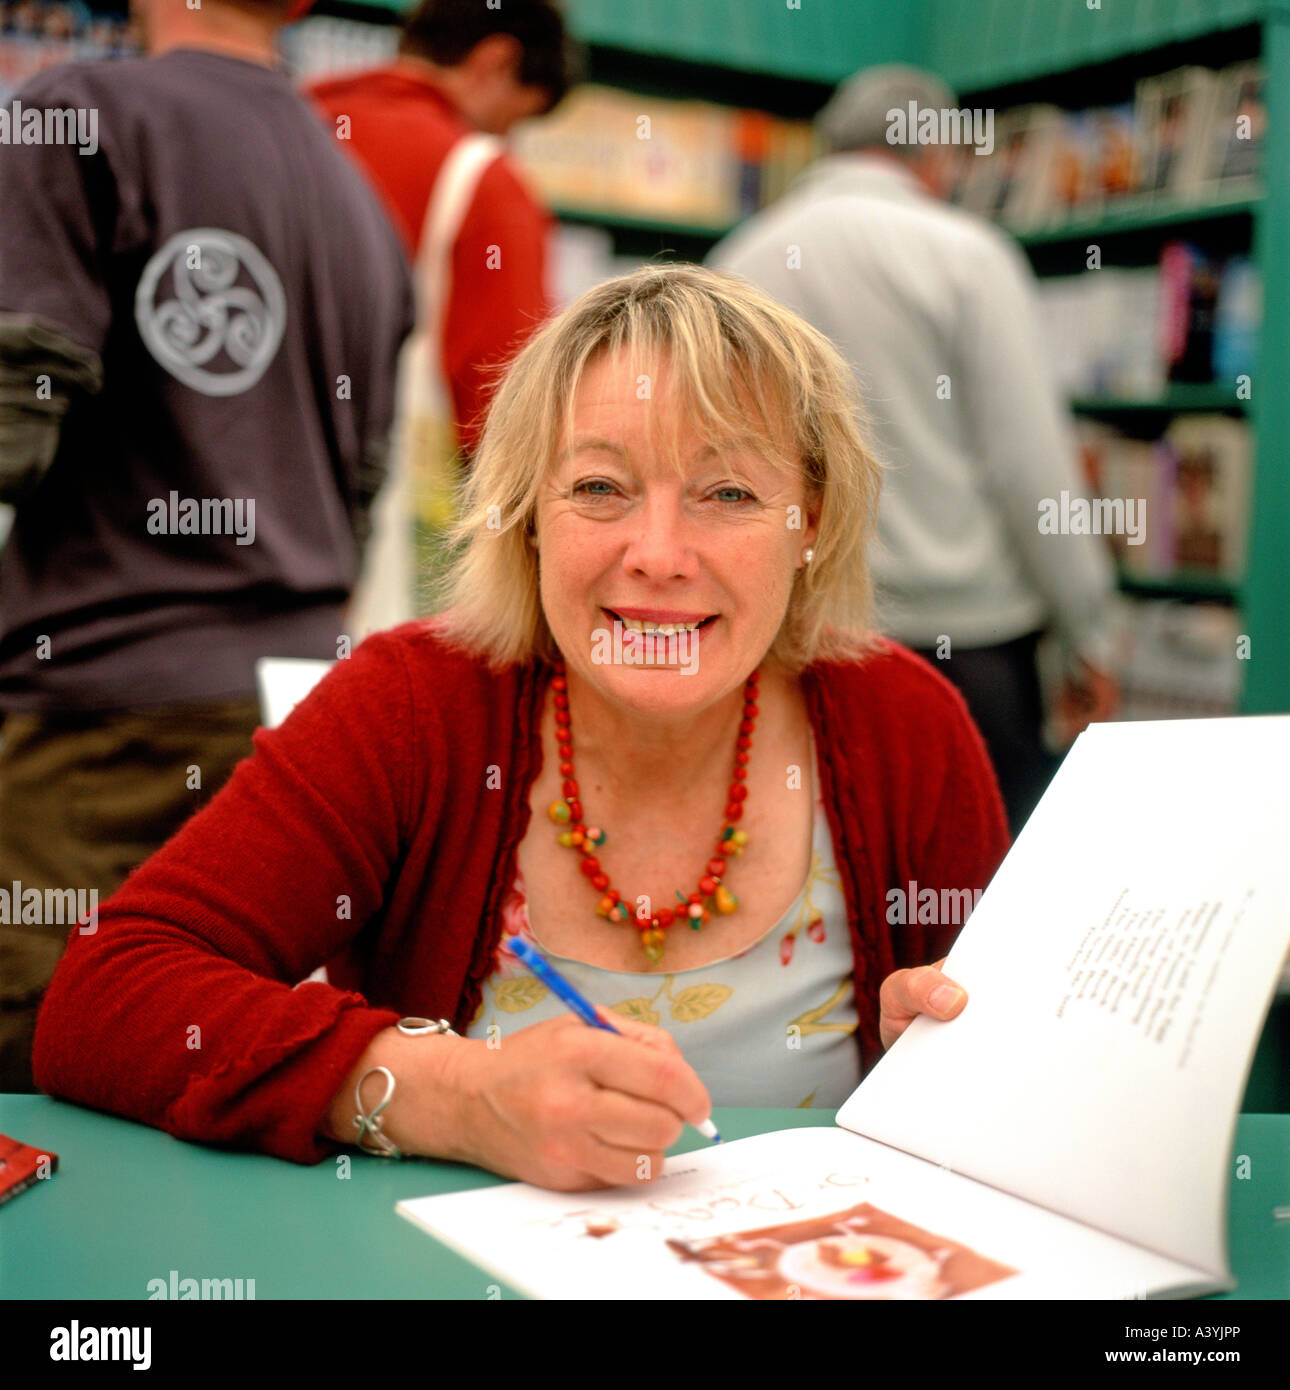 Childrens writer Babette Cole author of Mummy Laid An Egg! & kids books  book signing in bookshop at the Hay - Stock Image